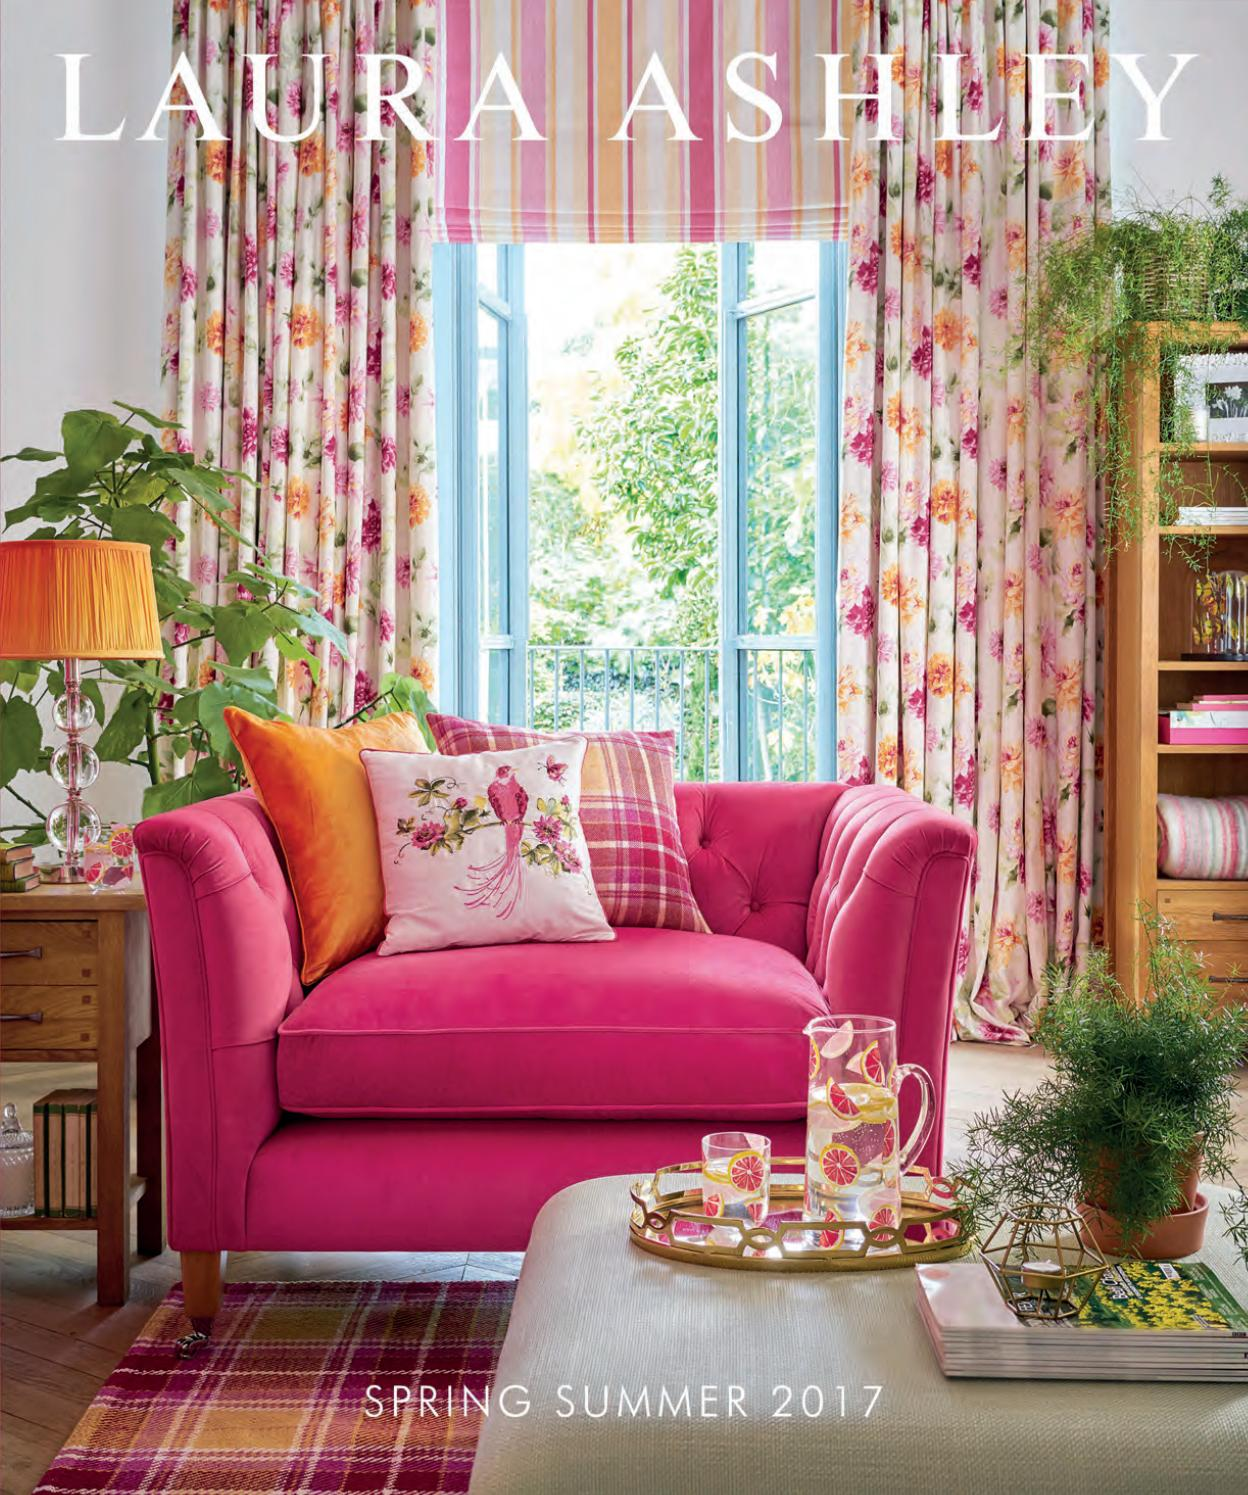 Laura ashley home ss 2017 new catalogue by stanislav - Catalogo laura ashley ...